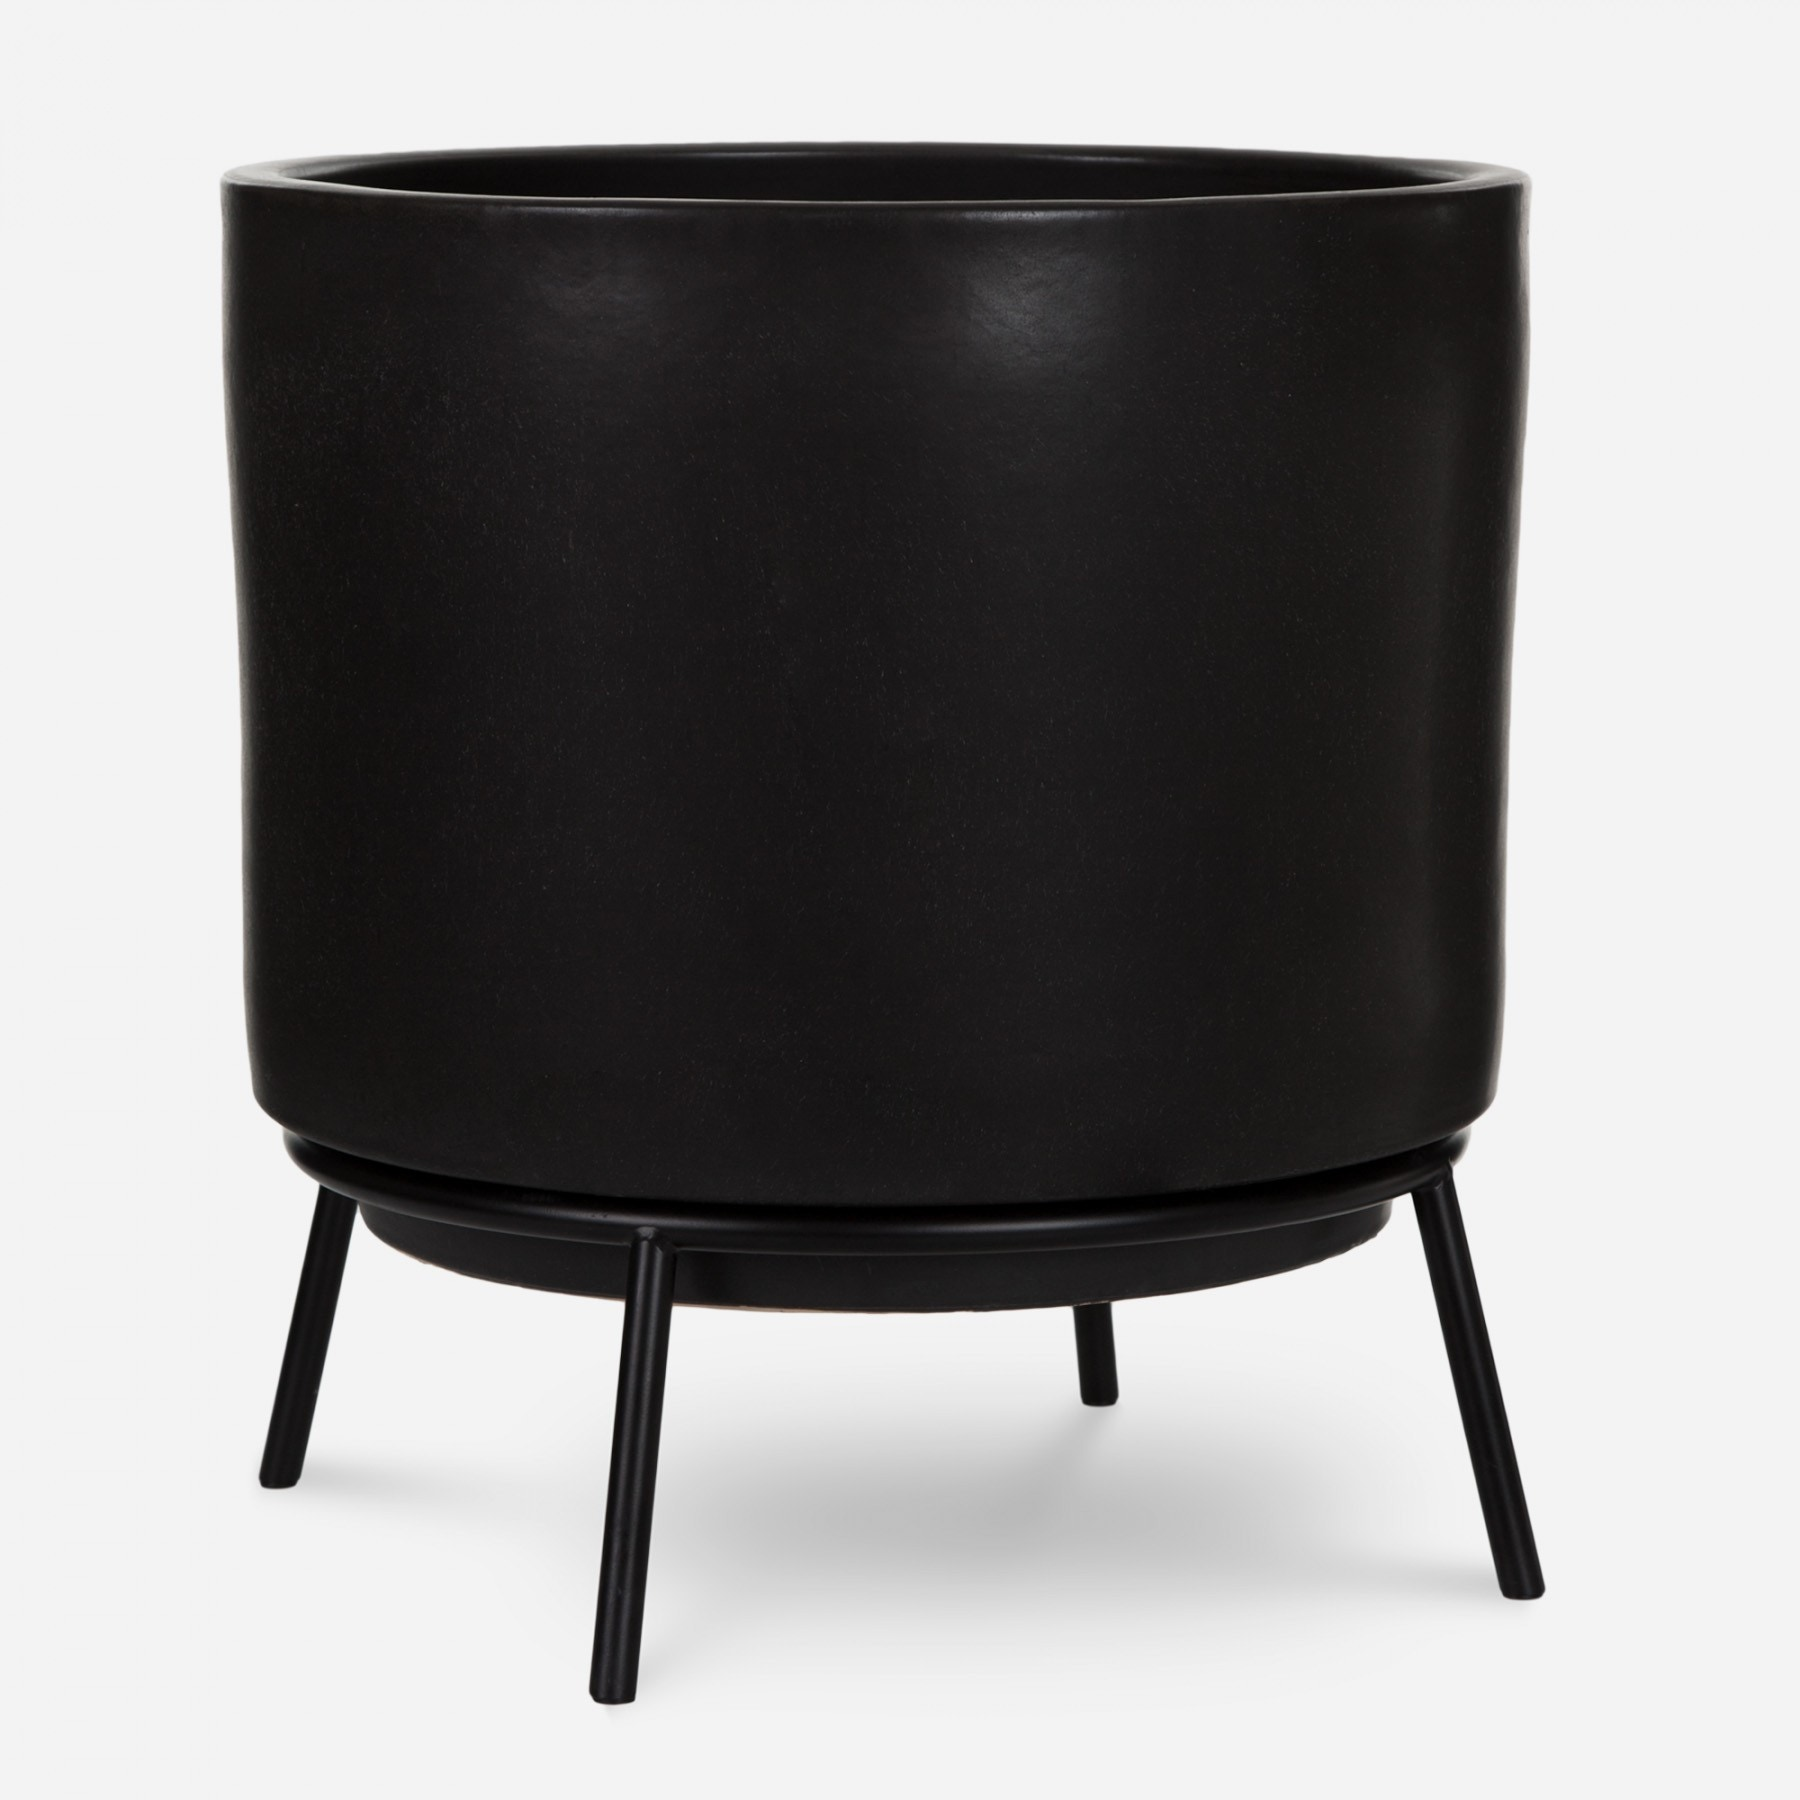 Modernica Case Study® Ceramics Raised Large High Pan with Cradle Stand (Planter)